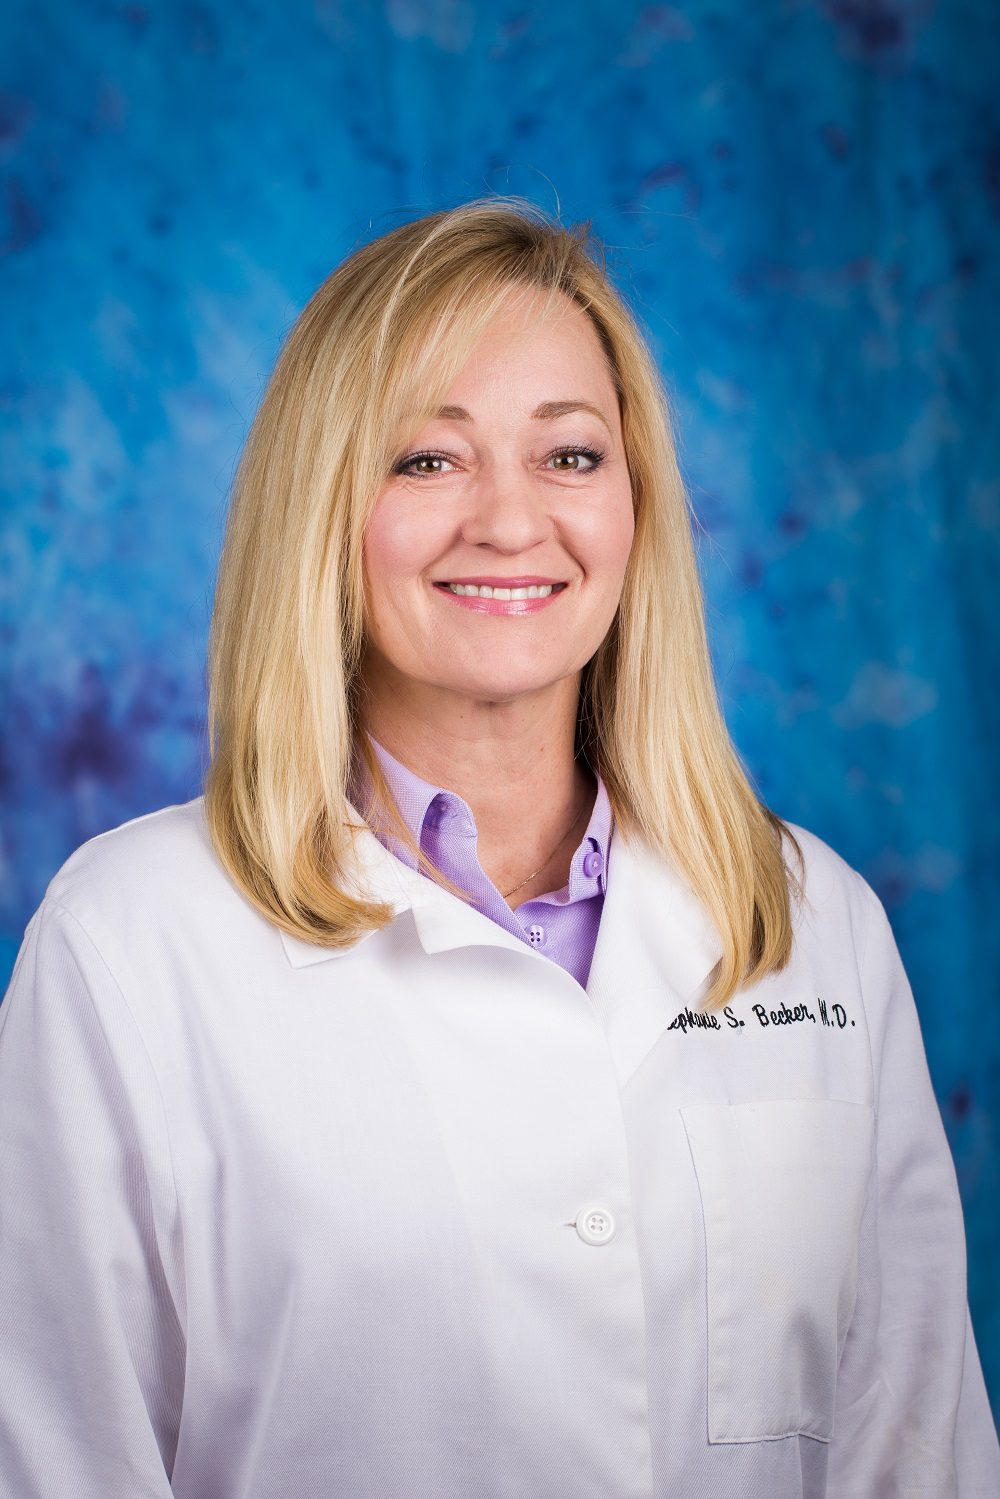 Stephanie Becker, MD